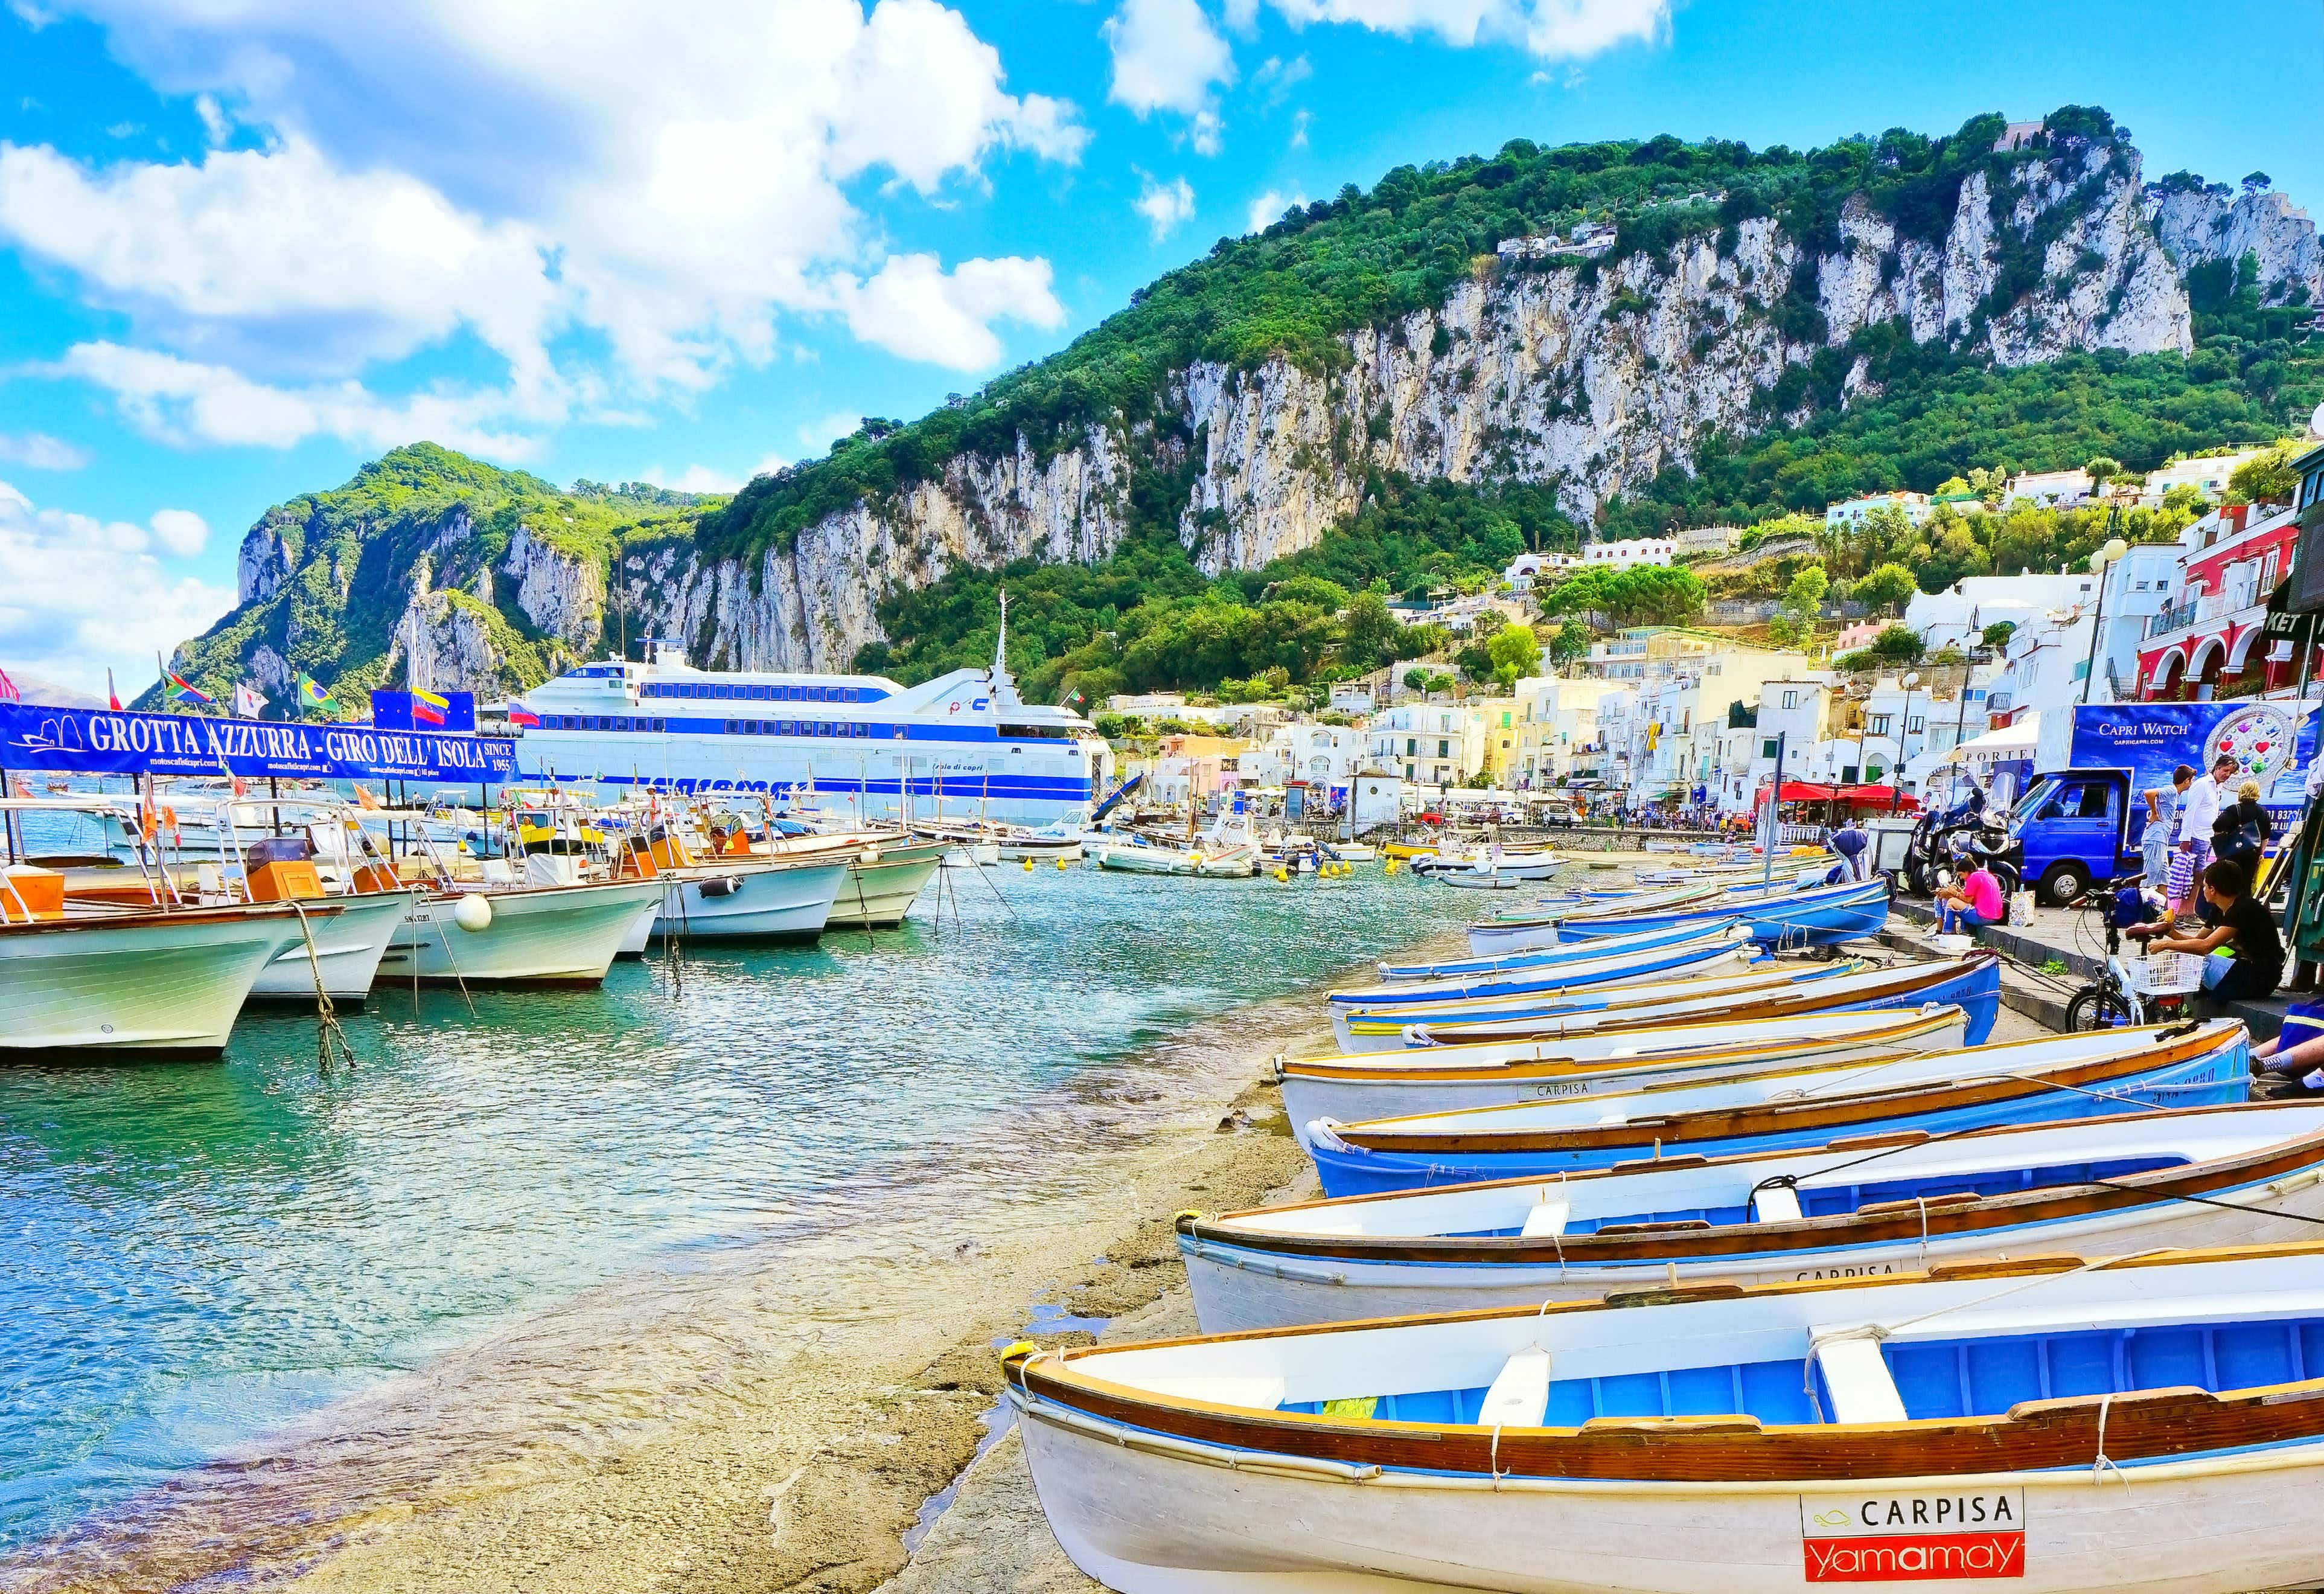 Boats fill the harbour and beach at Marina Grande on the Island of Capri, Italy © Javen / Shutterstock